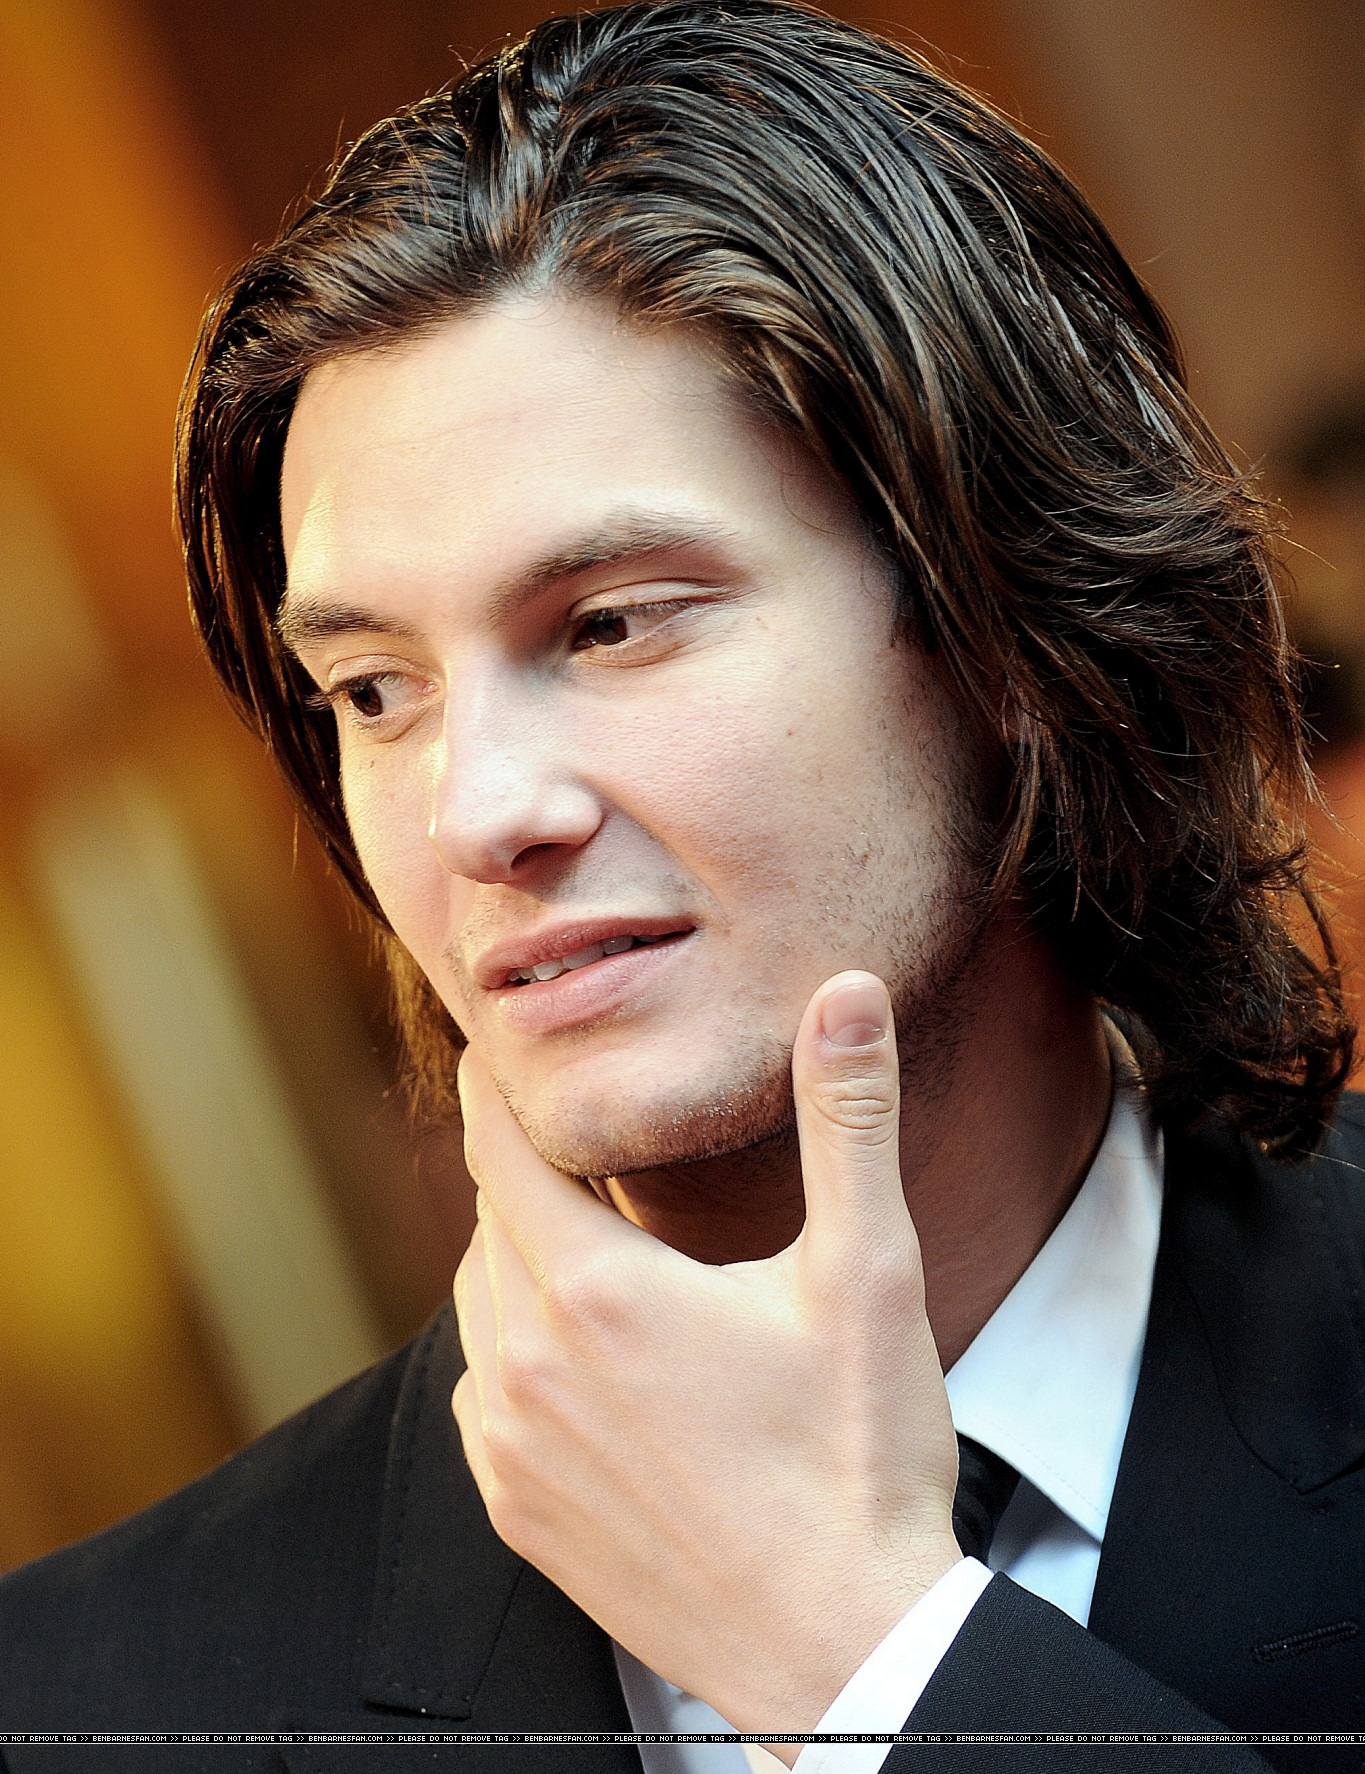 Бен Барнс - Ben Barnes фото №366324: http://www.theplace.ru/photos/photo.php?id=366324